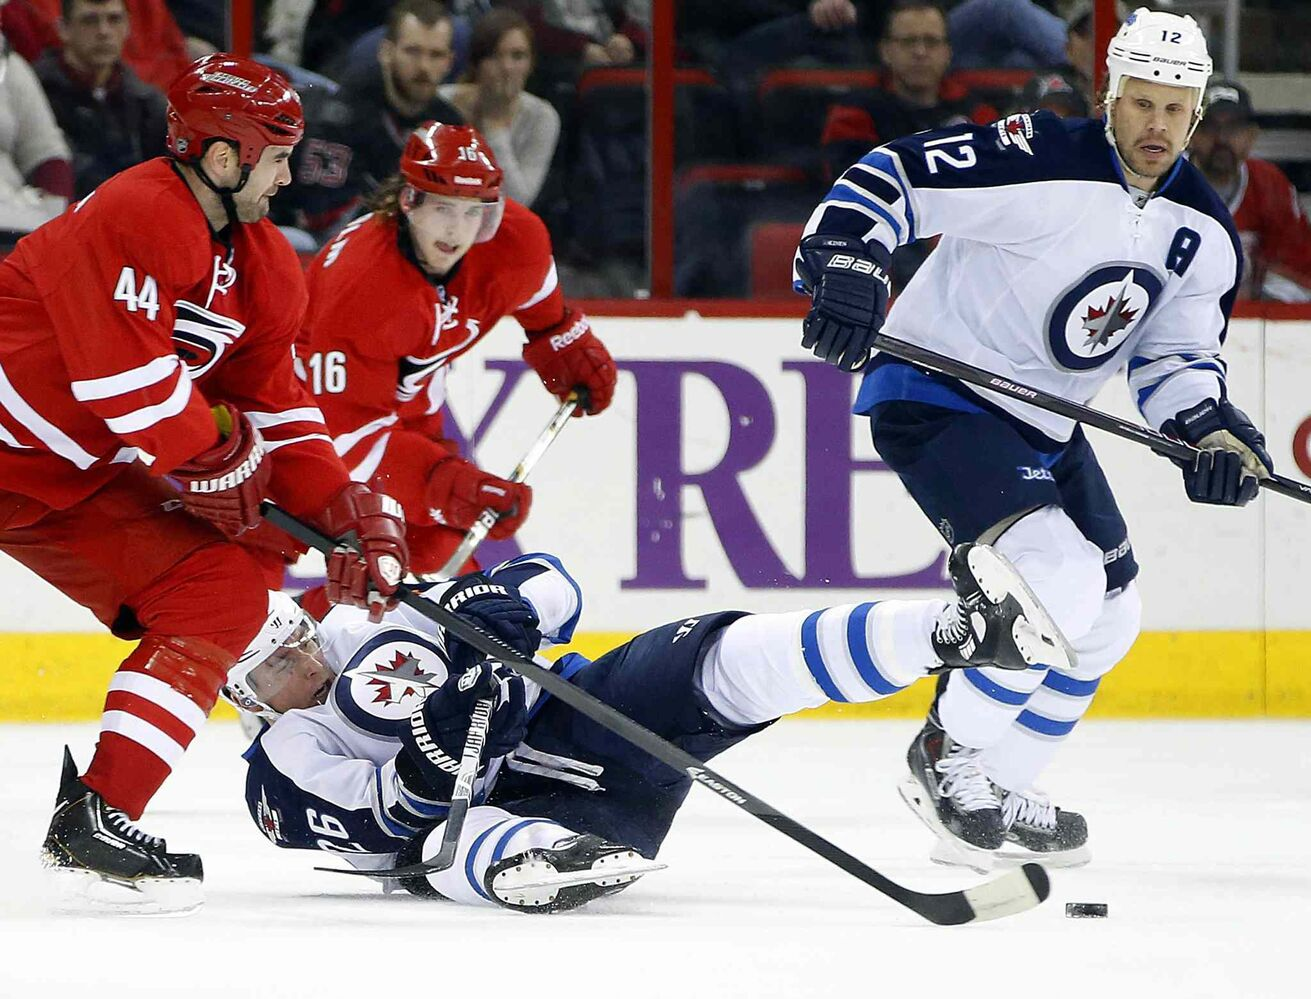 Carolina Hurricanes' Jay Harrison (44) takes Winnipeg Jets' Blake Wheeler (26) off the puck with Olli Jokinen (12) of Finland, during the first period of an NHL hockey game in Raleigh, N.C. on Tuesday.